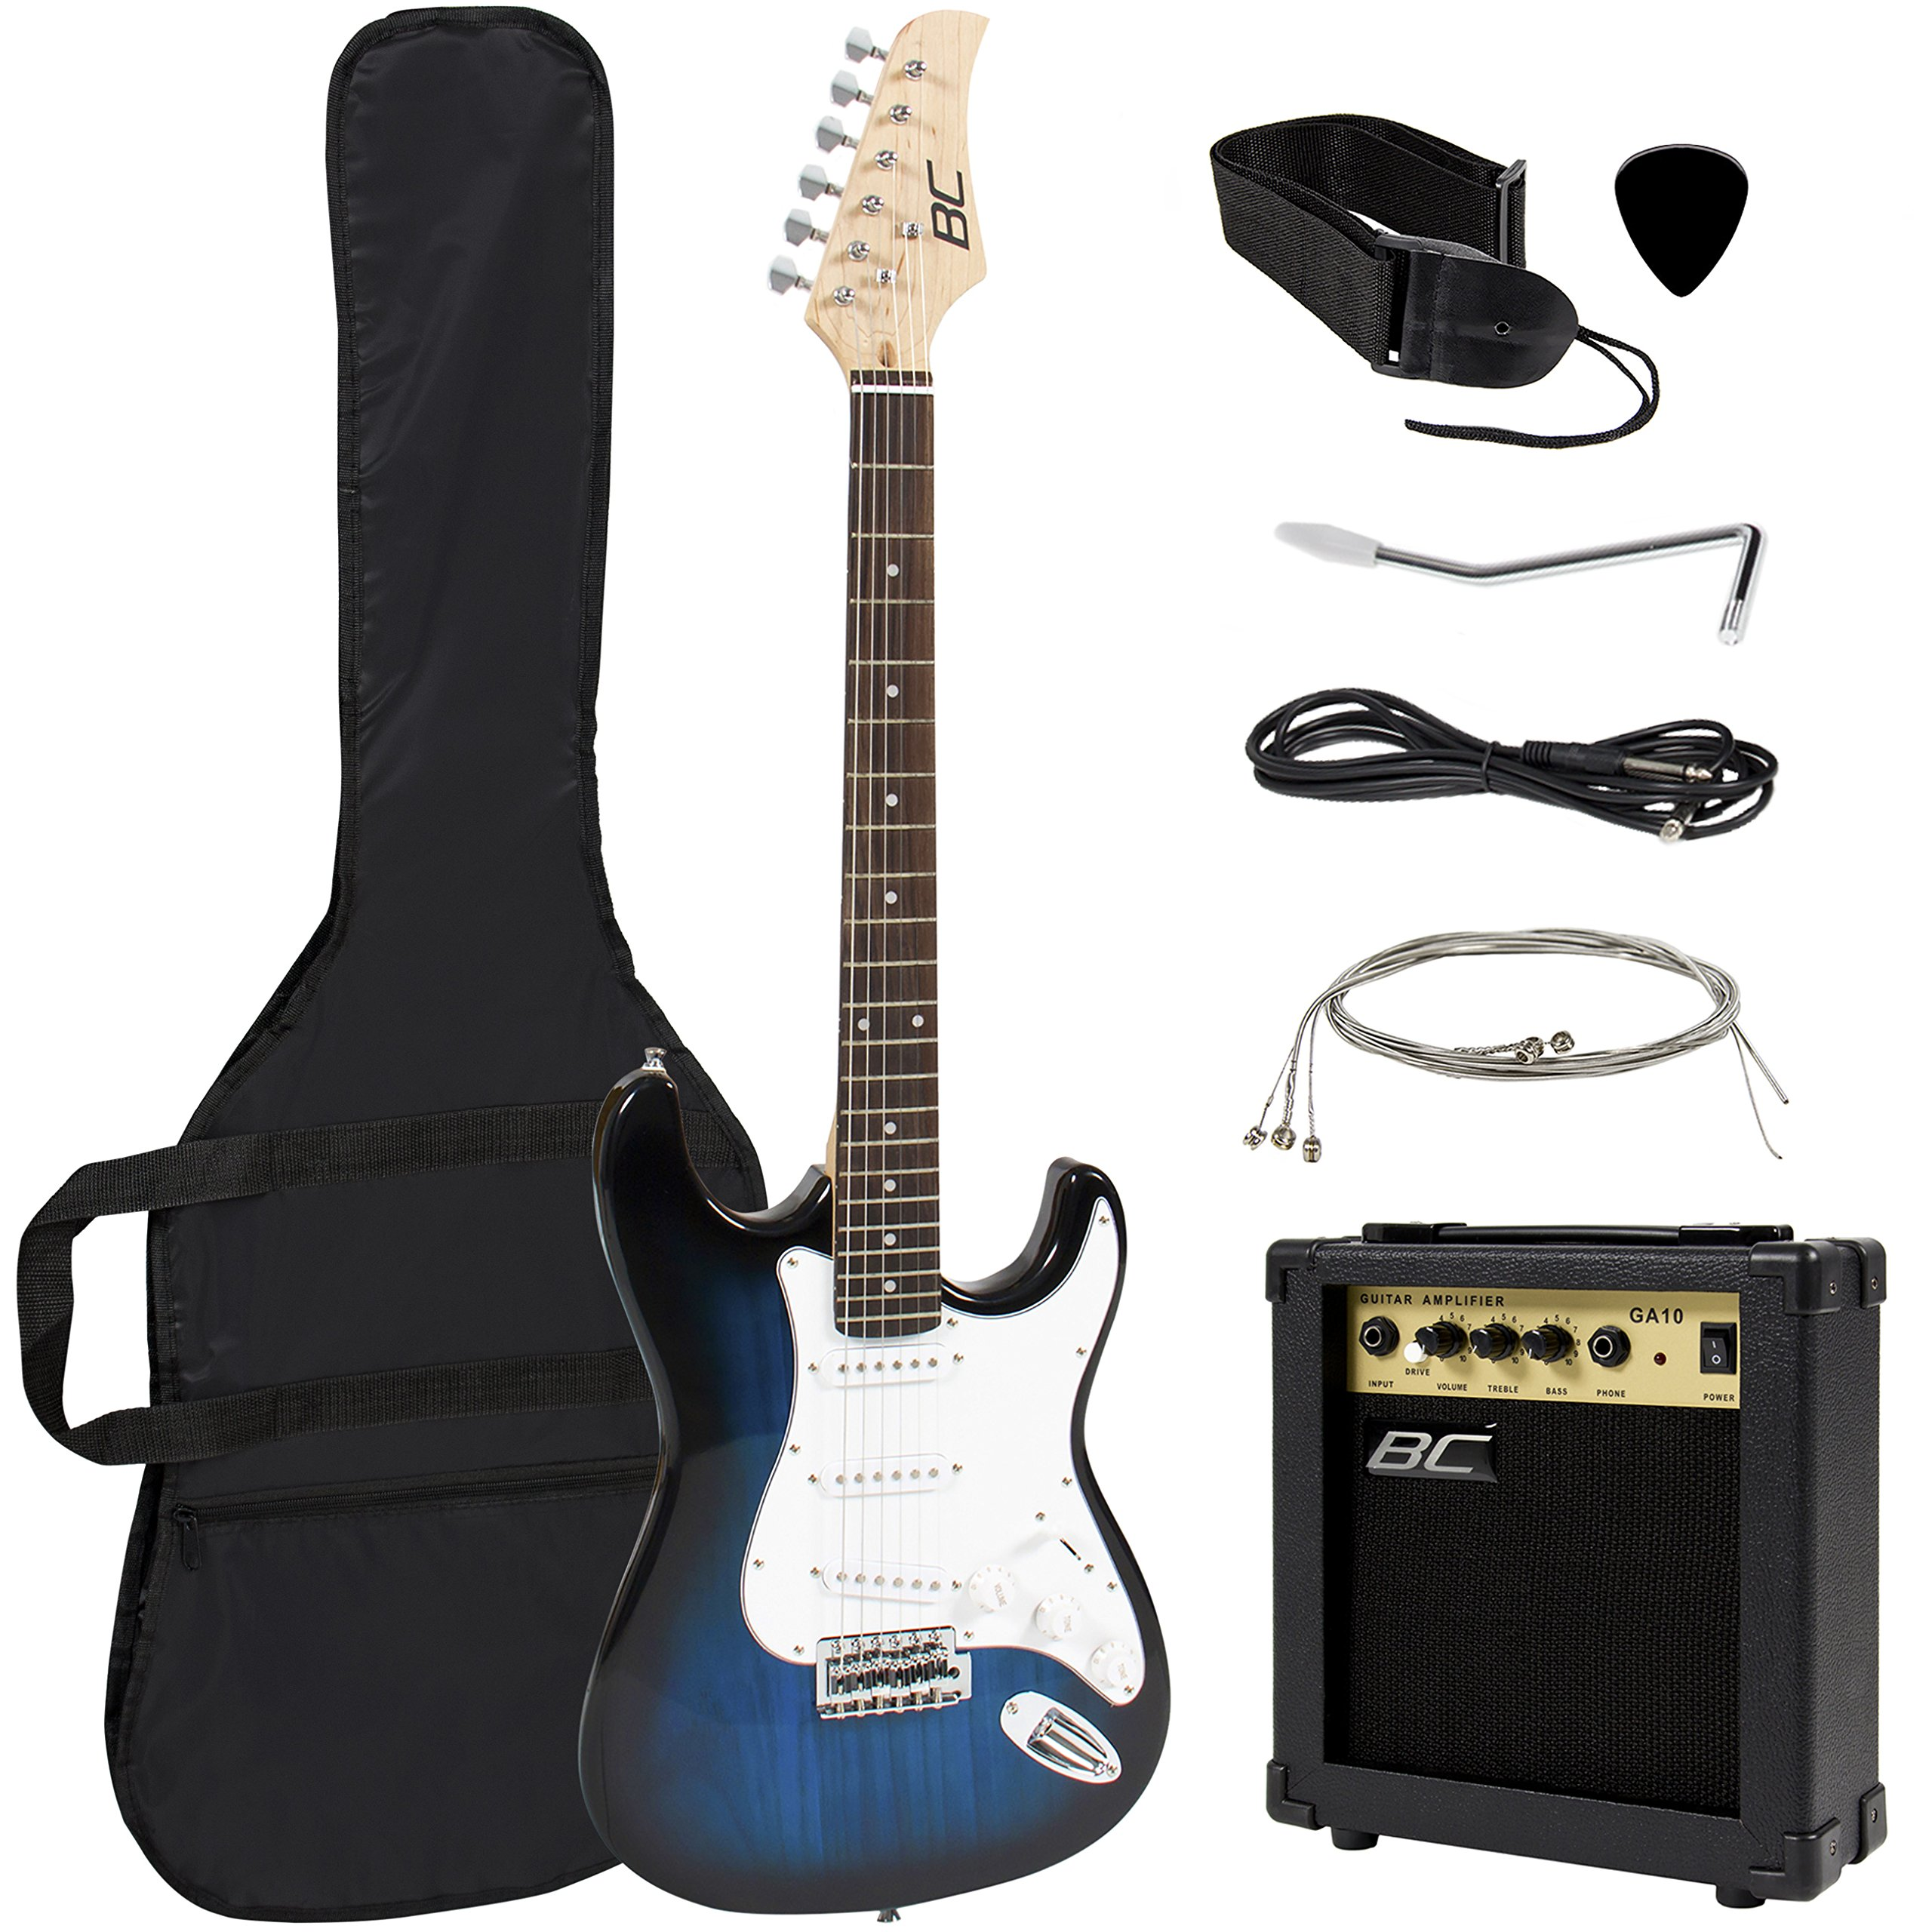 Best Choice Products 39in Full Size Beginner Electric Guitar Starter Kit with Case, Strap, 10W Amp, Strings, Pick, Tremolo Bar (Blue) by Best Choice Products